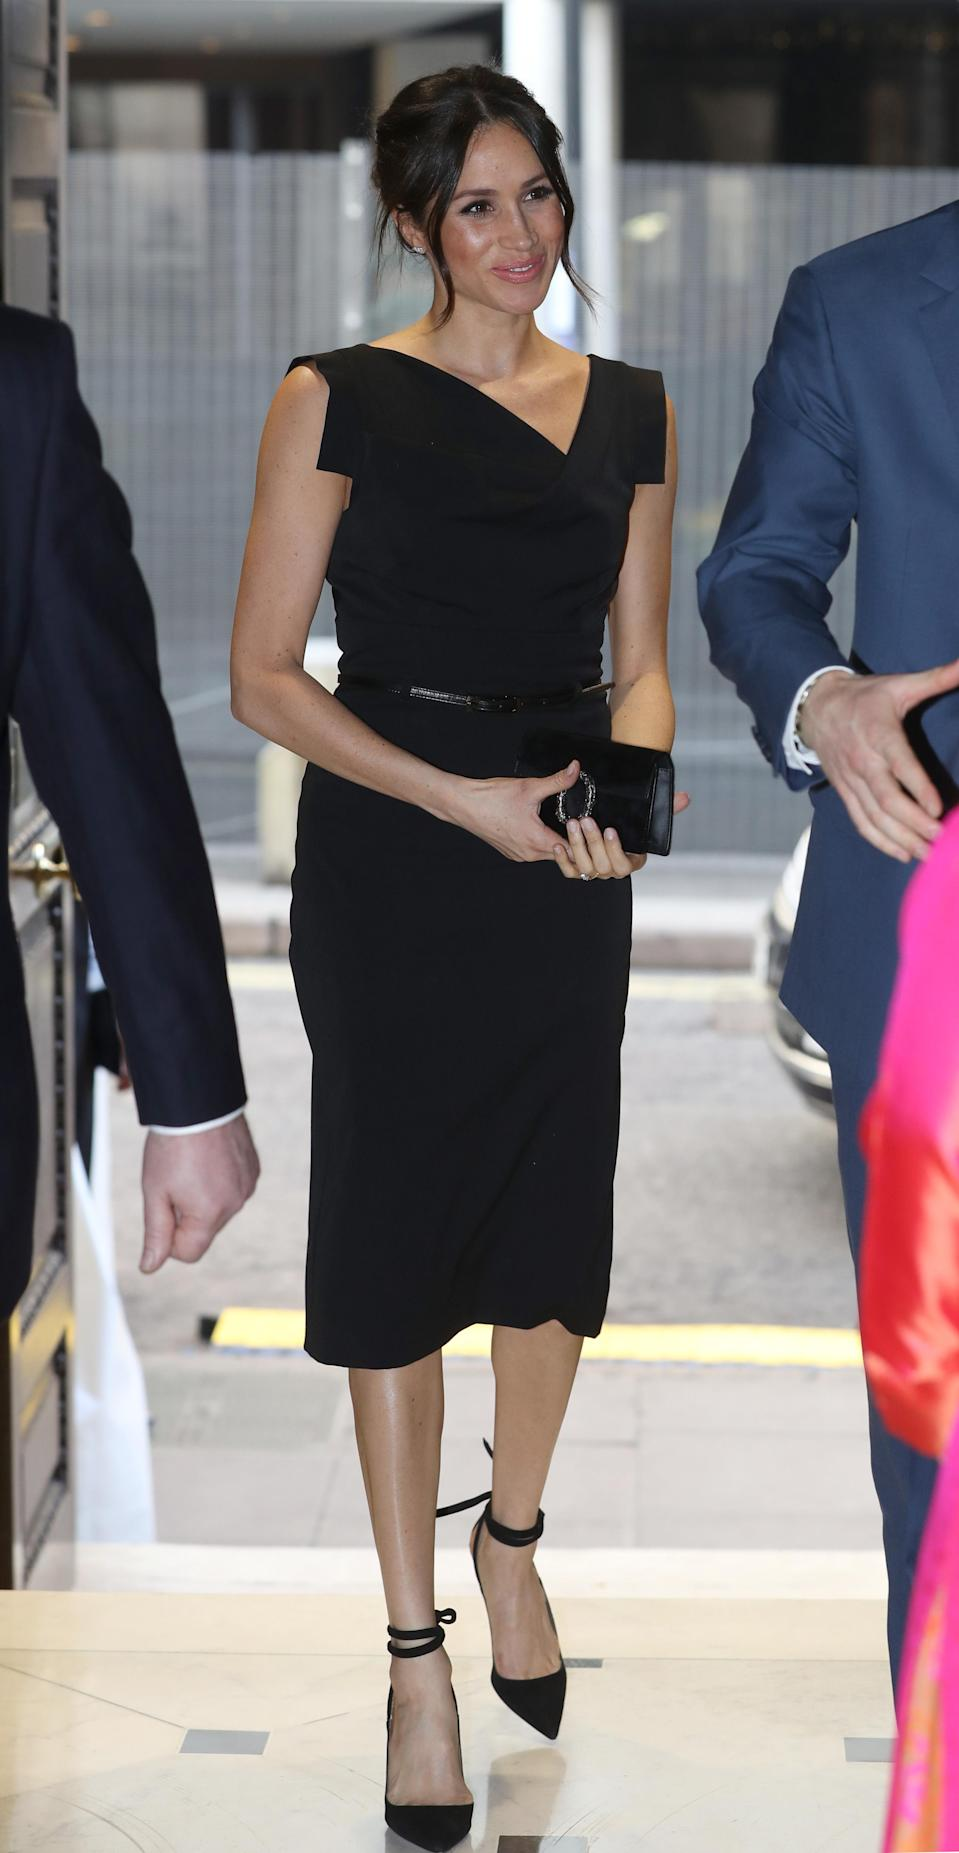 <p>Just days later, Meghan stepped out in an LBD that spoke a thousand words.<br><br>Silencing the naysayers, the royal wore a belted sheath dress by LA-based brand Black Halo, named the 'Jackie O Dress' costing £267, which she paired with the fashion-foreward Milano pumps by her go-to brand Aquazzura.<br>[Photo: Getty] </p>